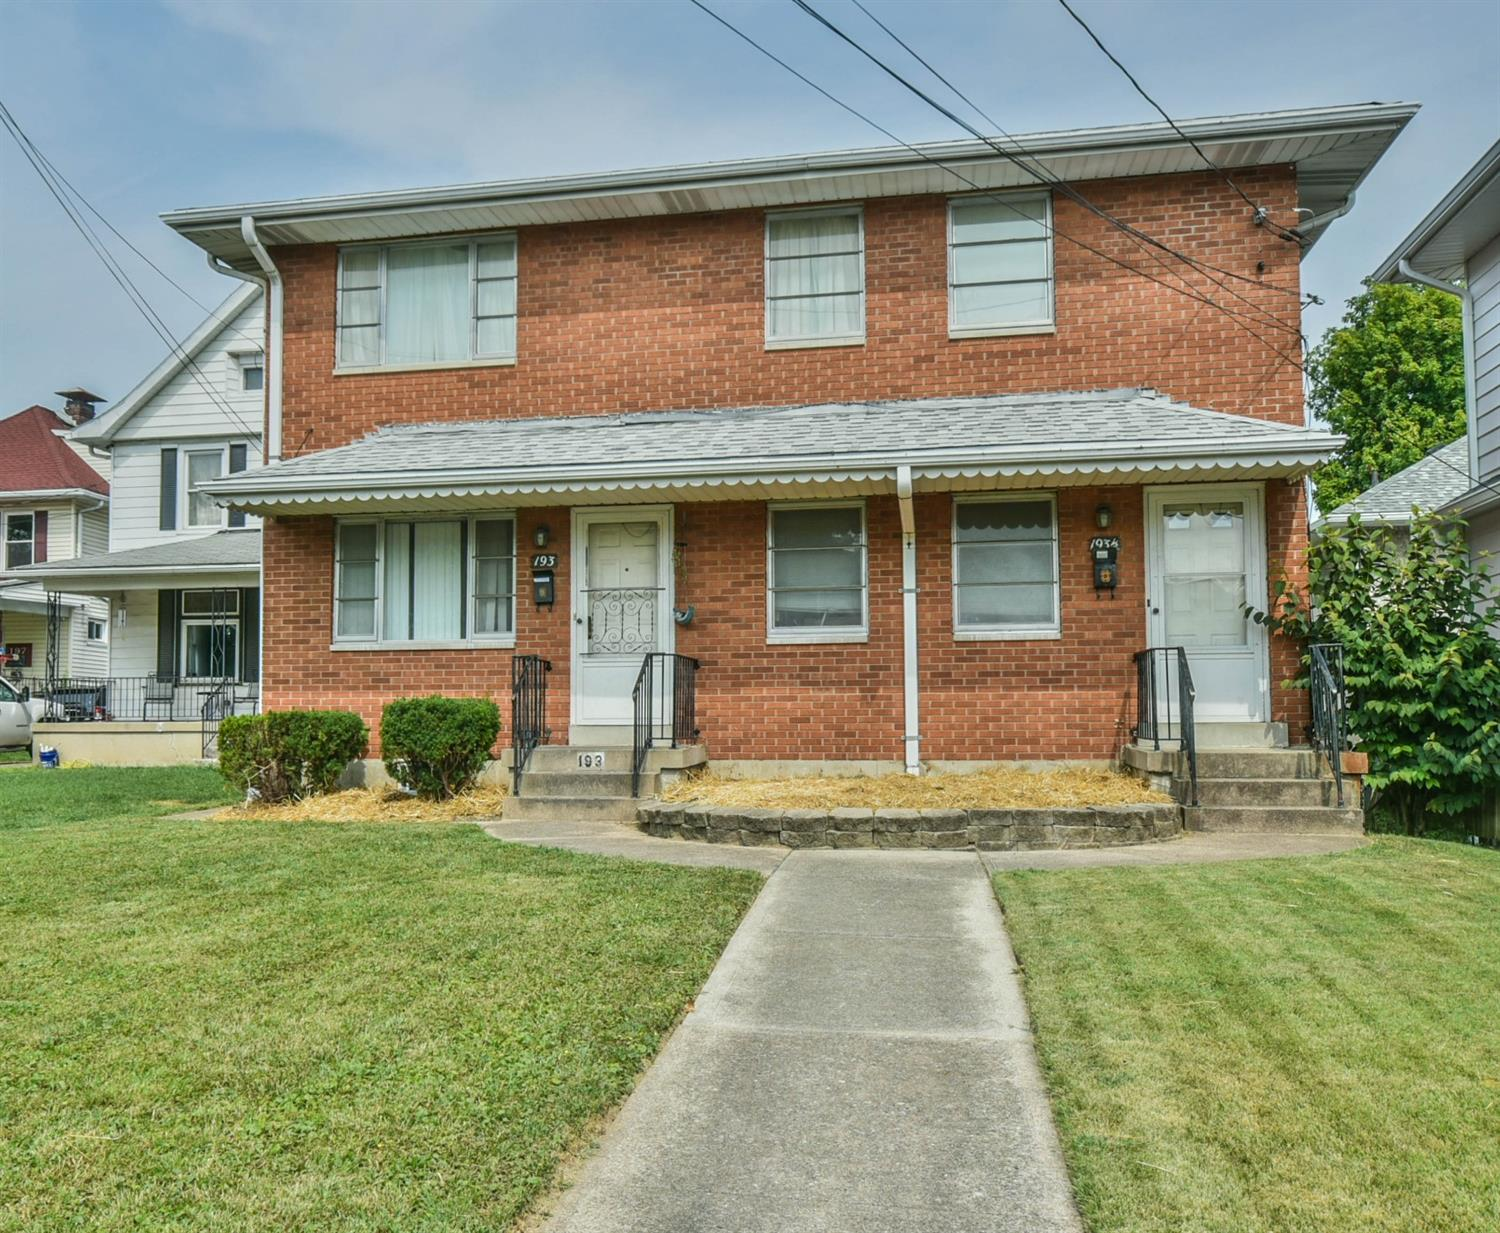 Location, location, location!  Great duplex with both units having two bedrooms.  Huge four car garage on rear of the property.  Perfect location for air BandB for Spookynook.  Separate utilities and fenced in back yard.  Washer and dryer hookups in the basement.